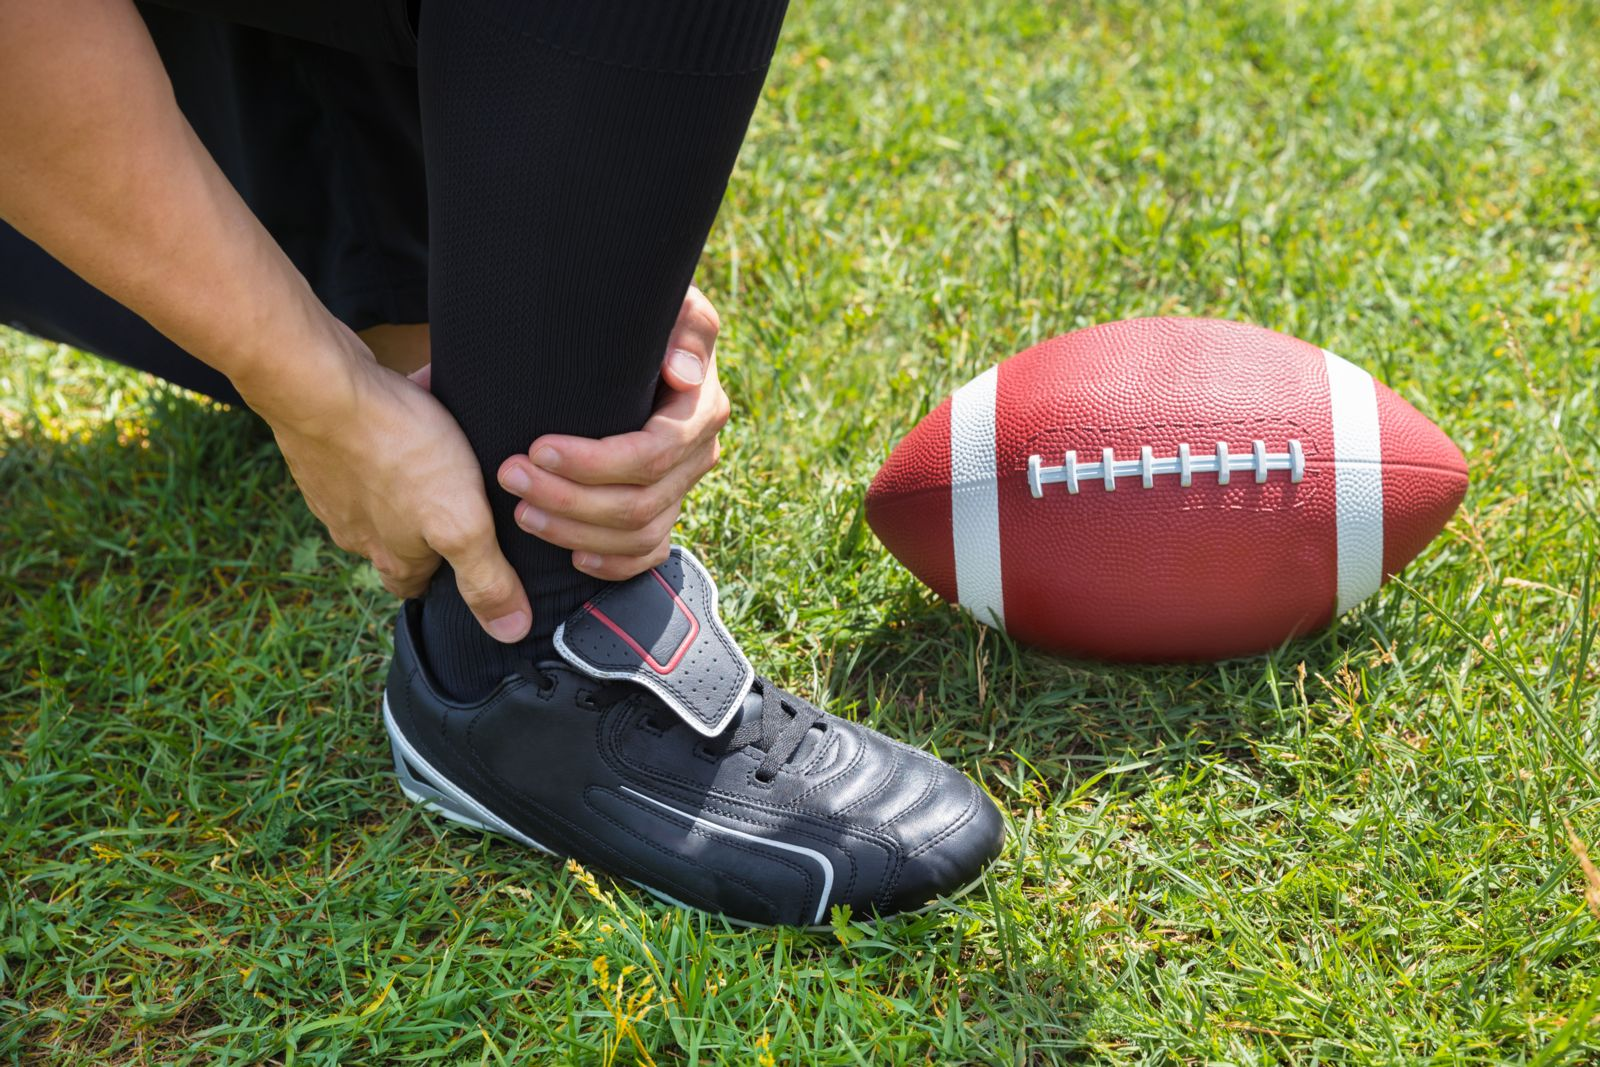 Football players have a high turf toe risk because of their training fields